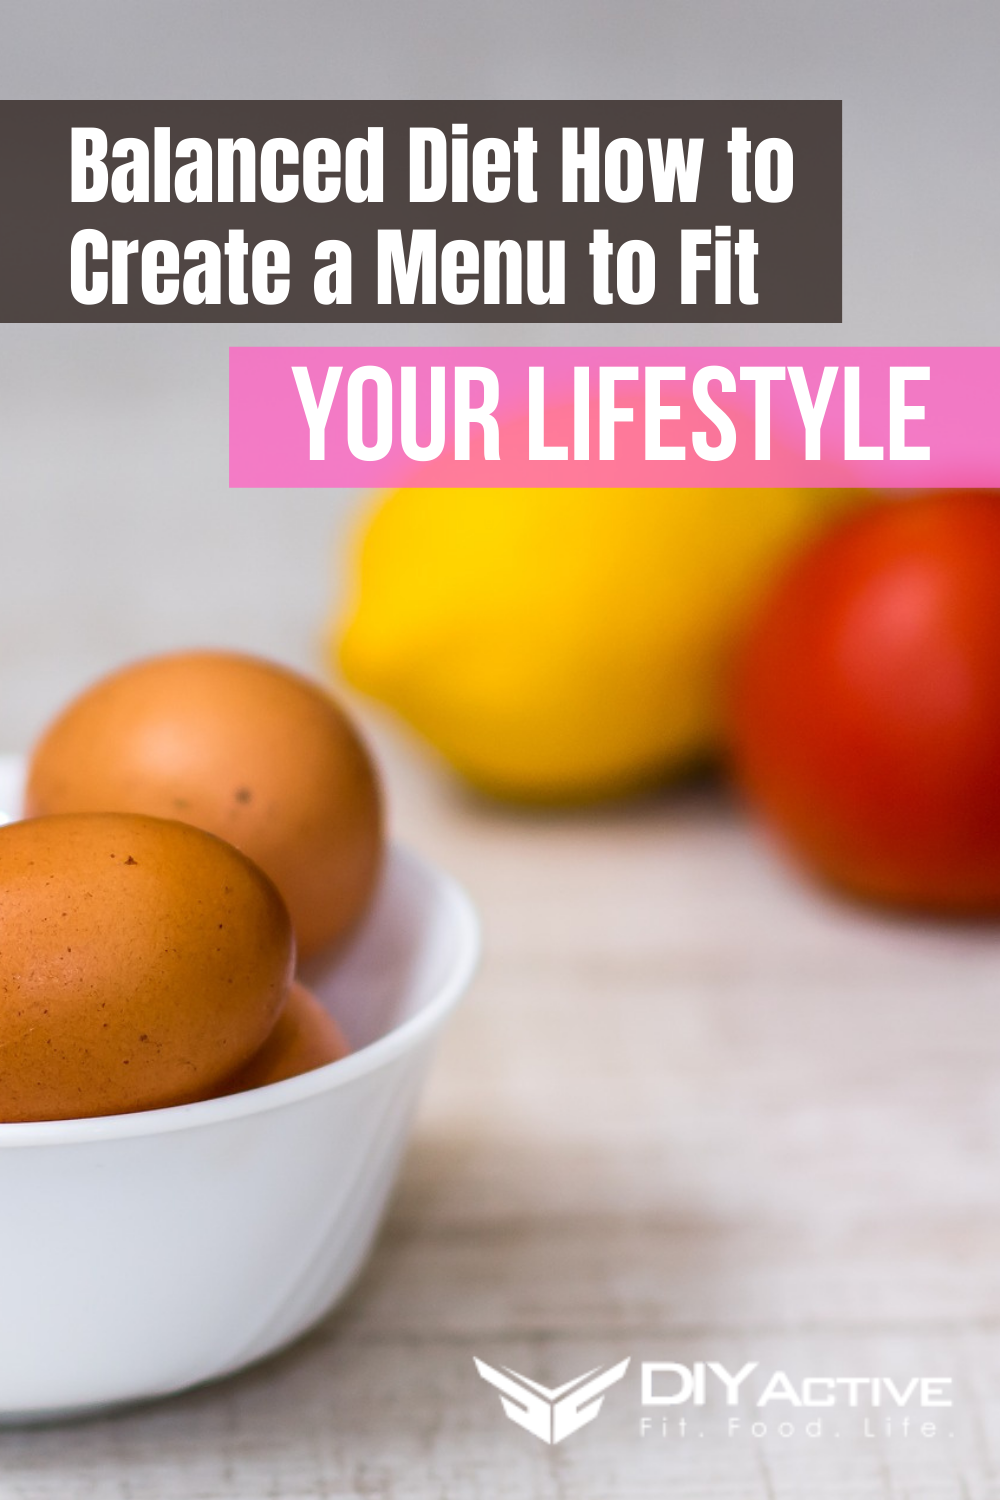 Balanced Diet: How to Create a Menu to Fit Your Lifestyle